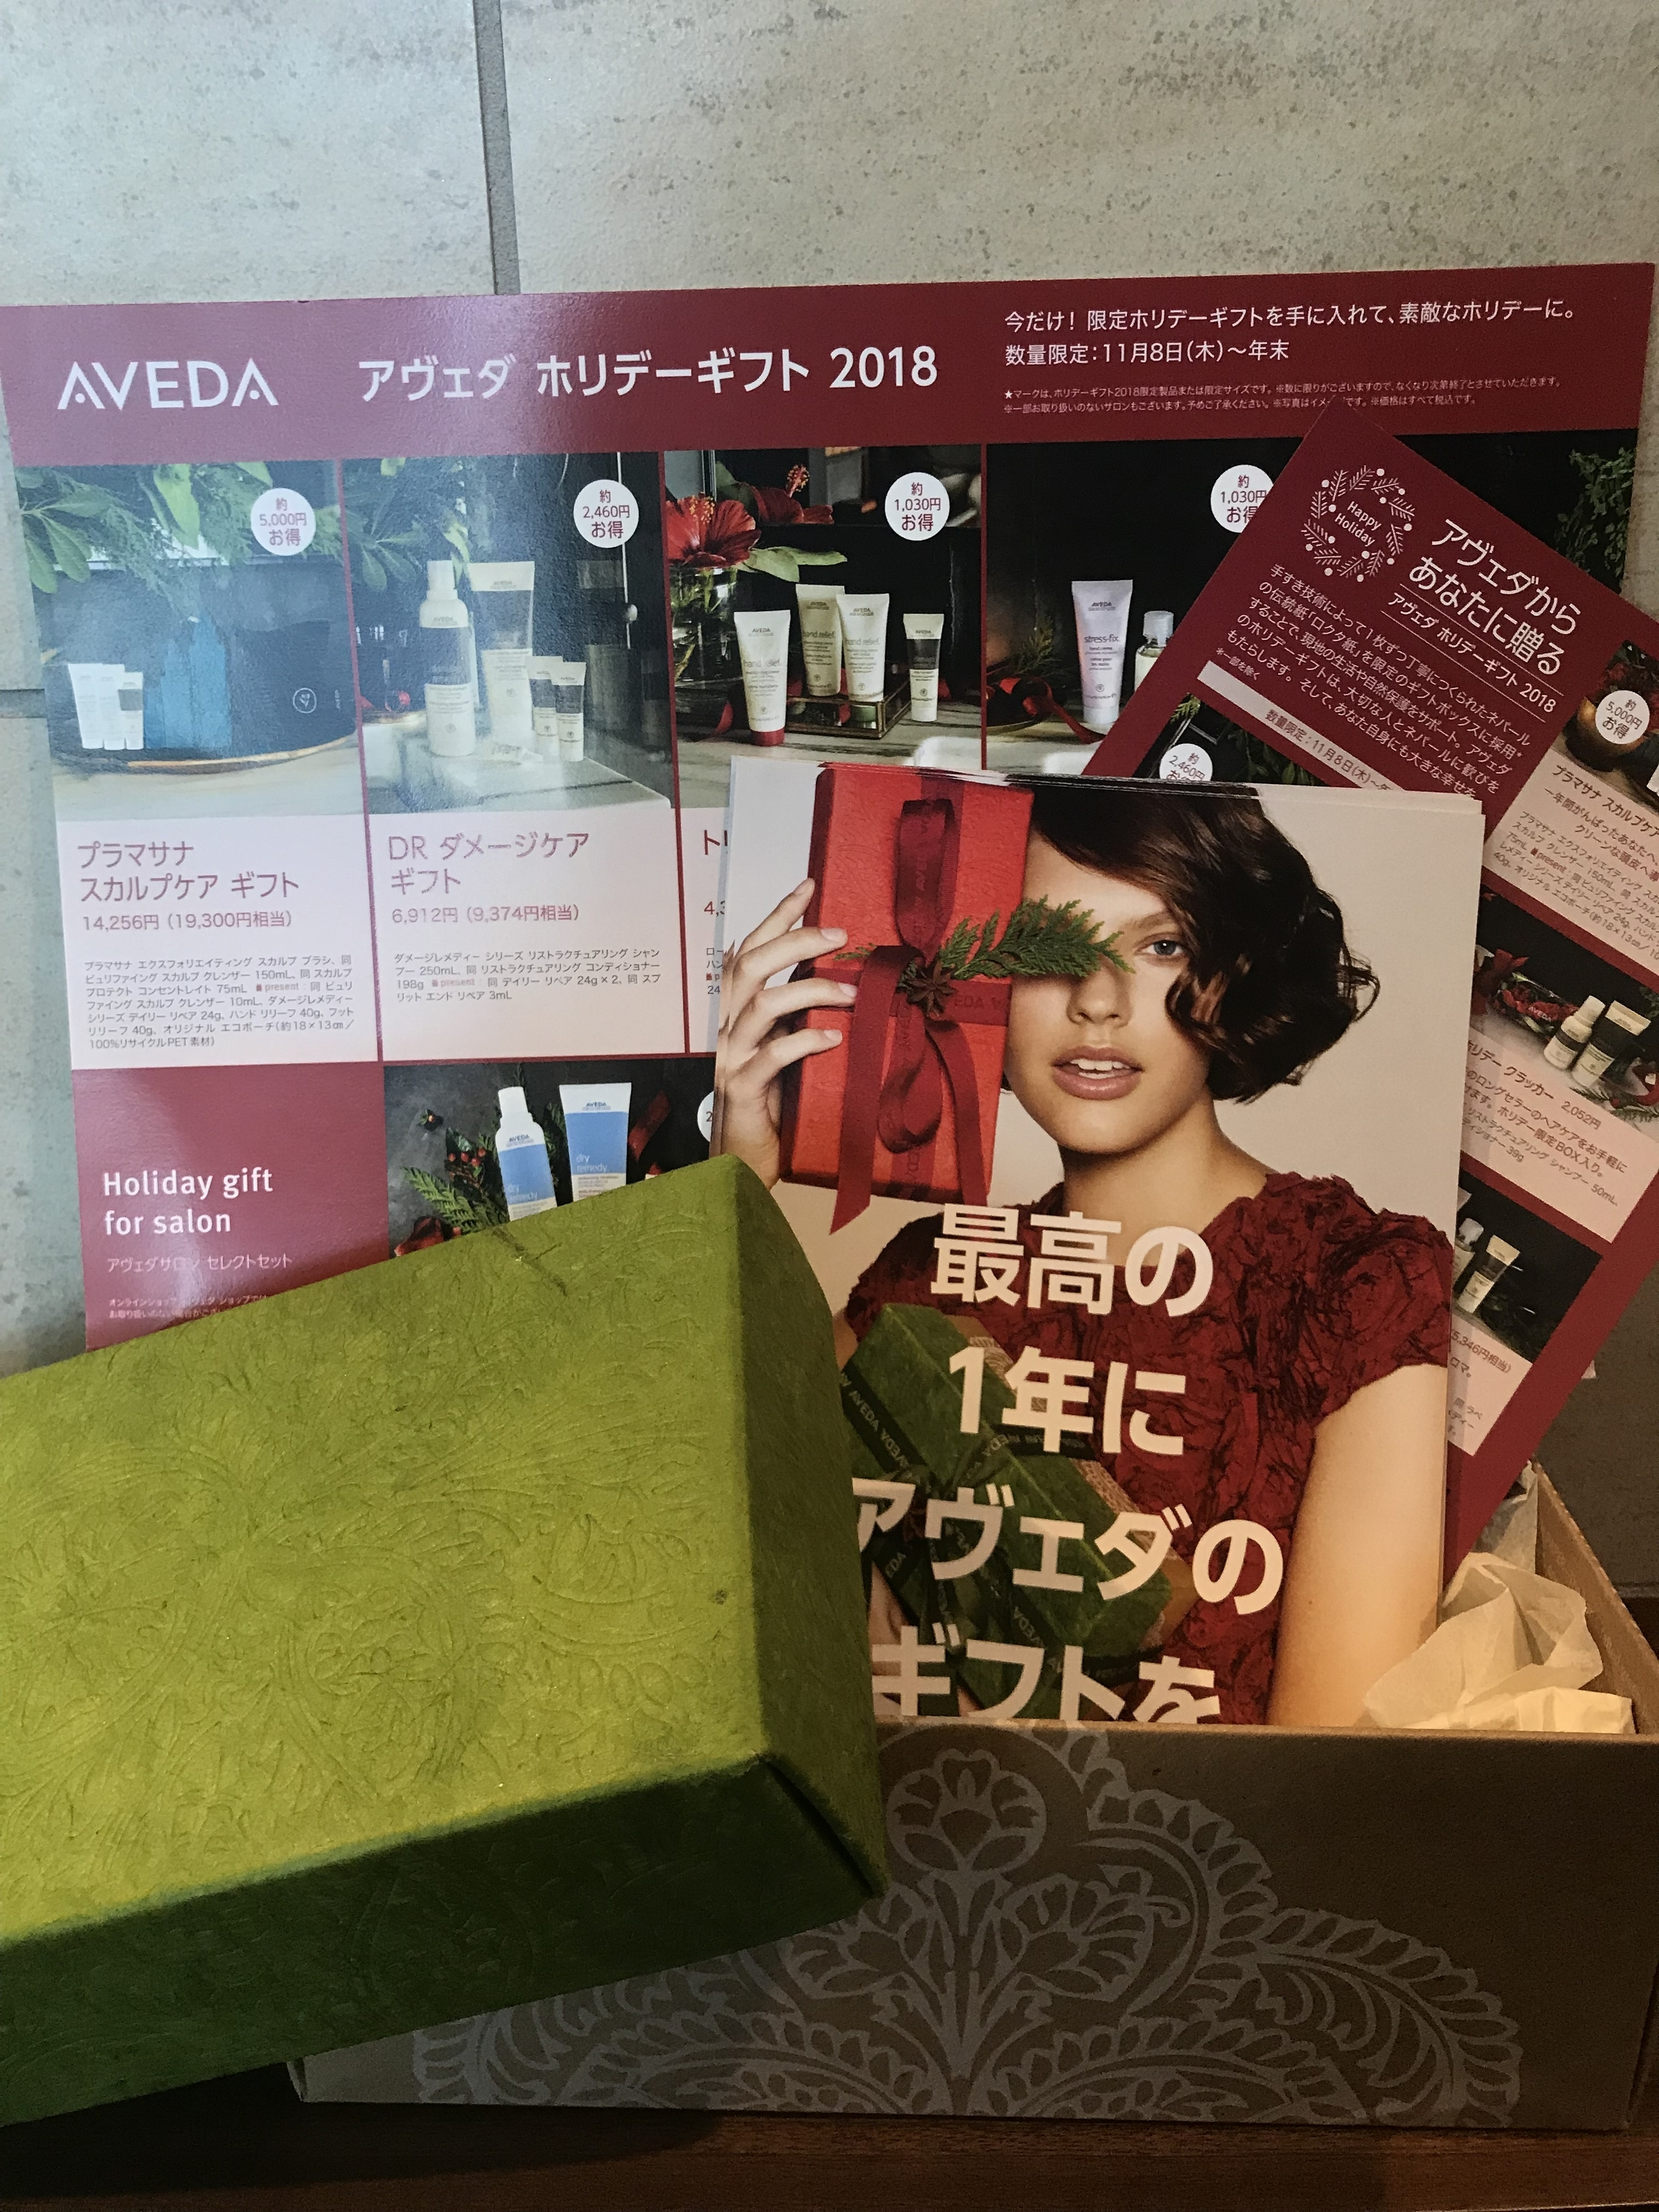 AVEDA クリスマスギフト ホリデーギフト 12月